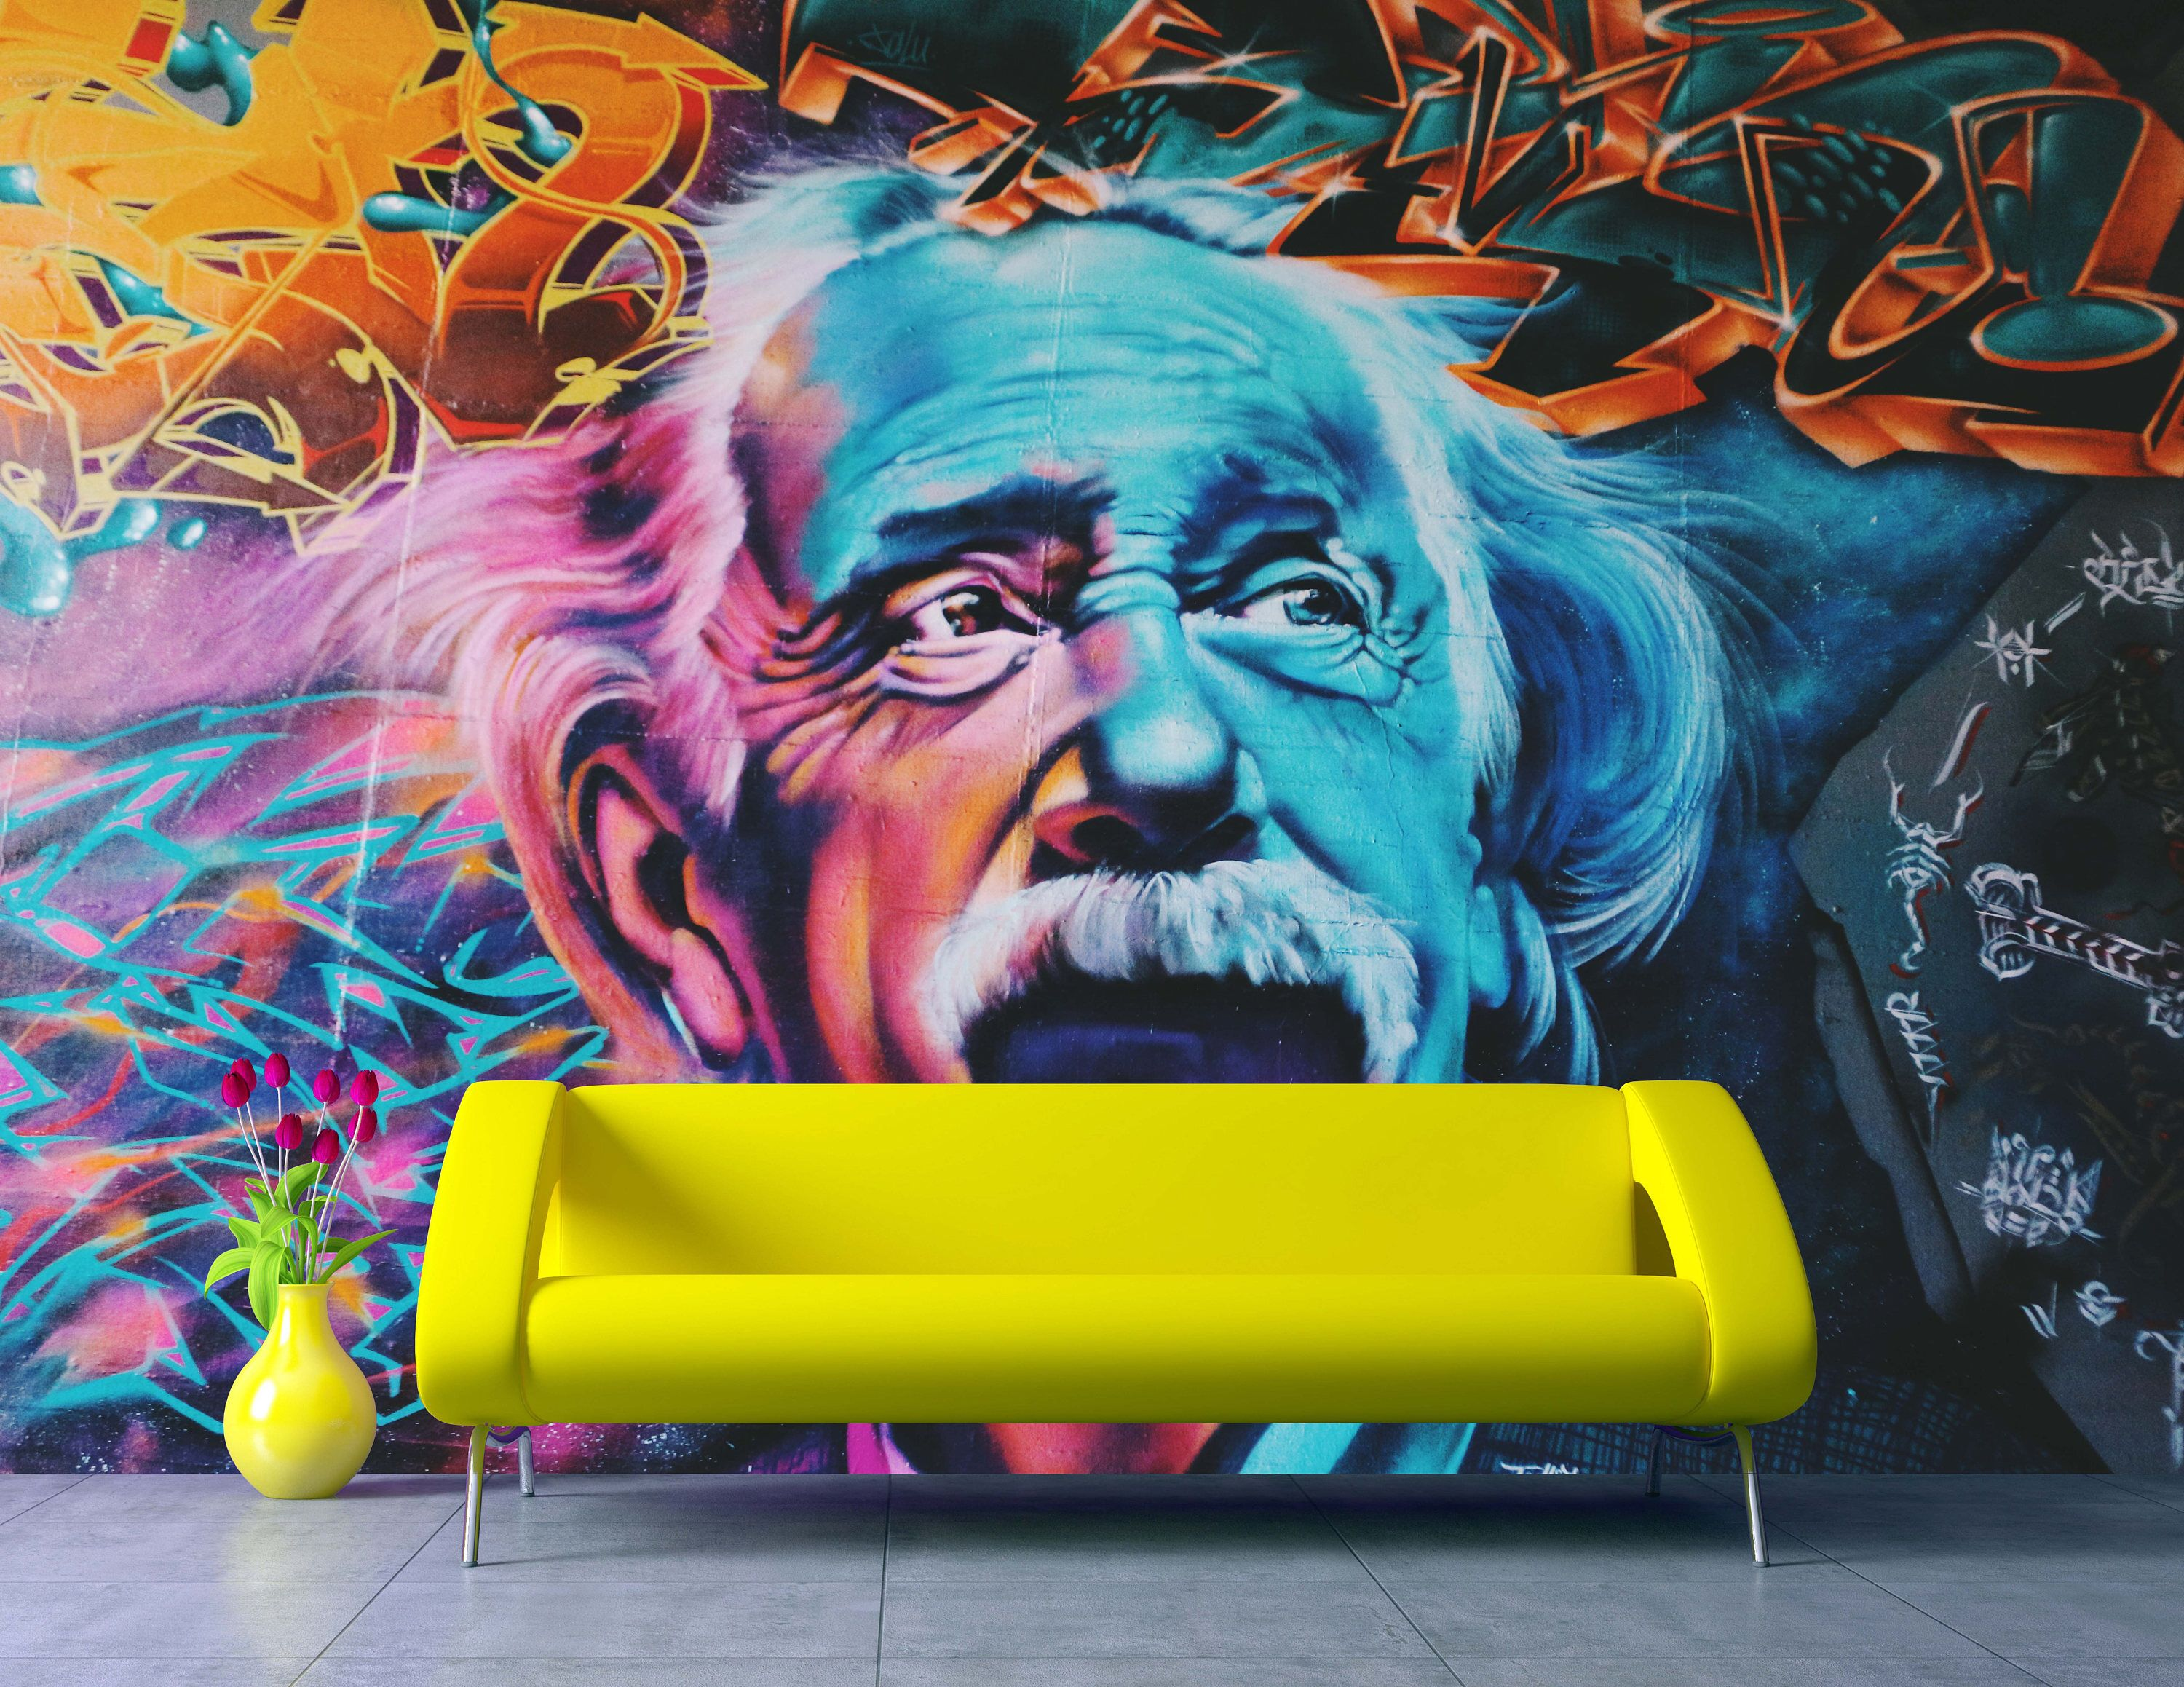 Removable Wallpaper Mural Peel & Stick Einstein Graffiti Wall Art